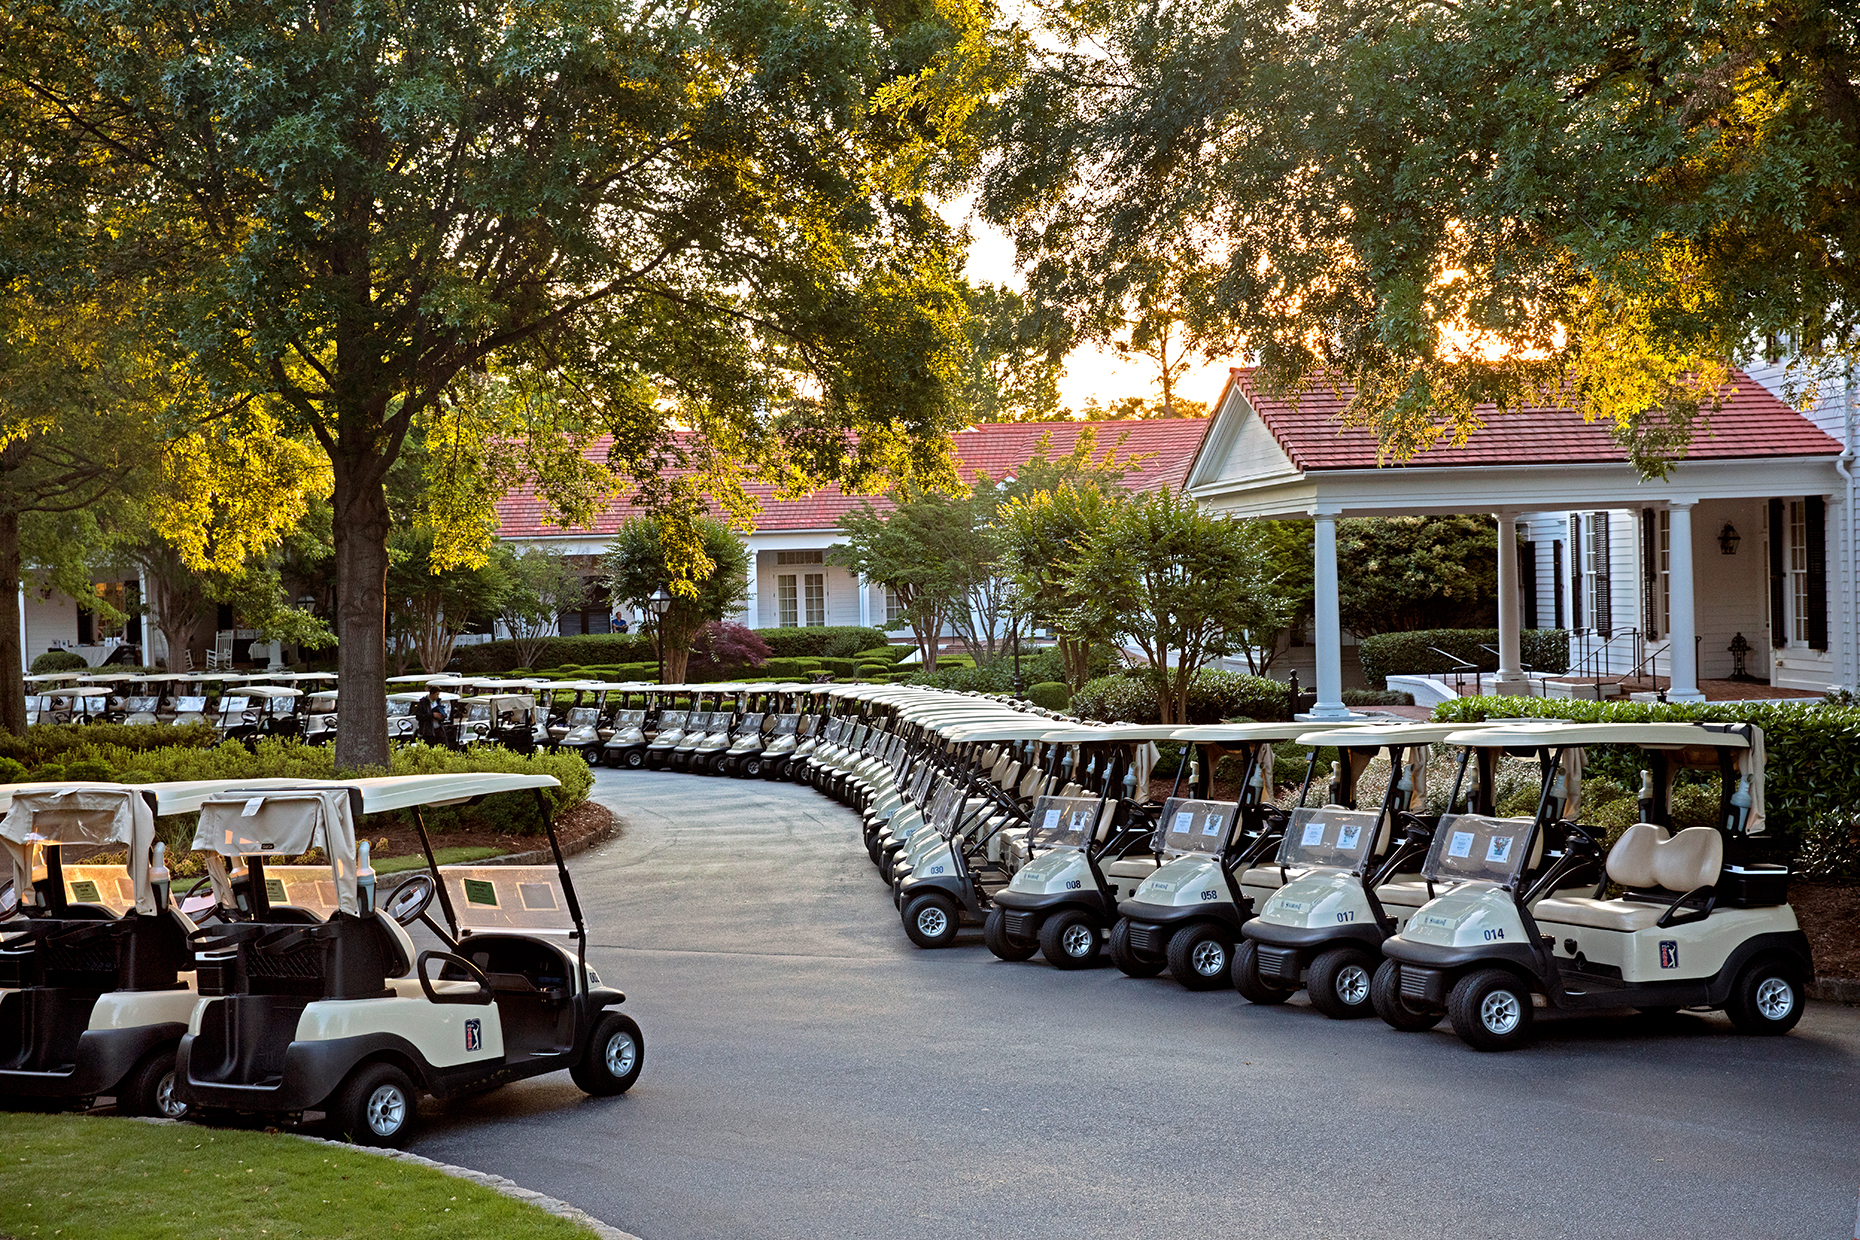 Carts in morning prior to event copy.jpg